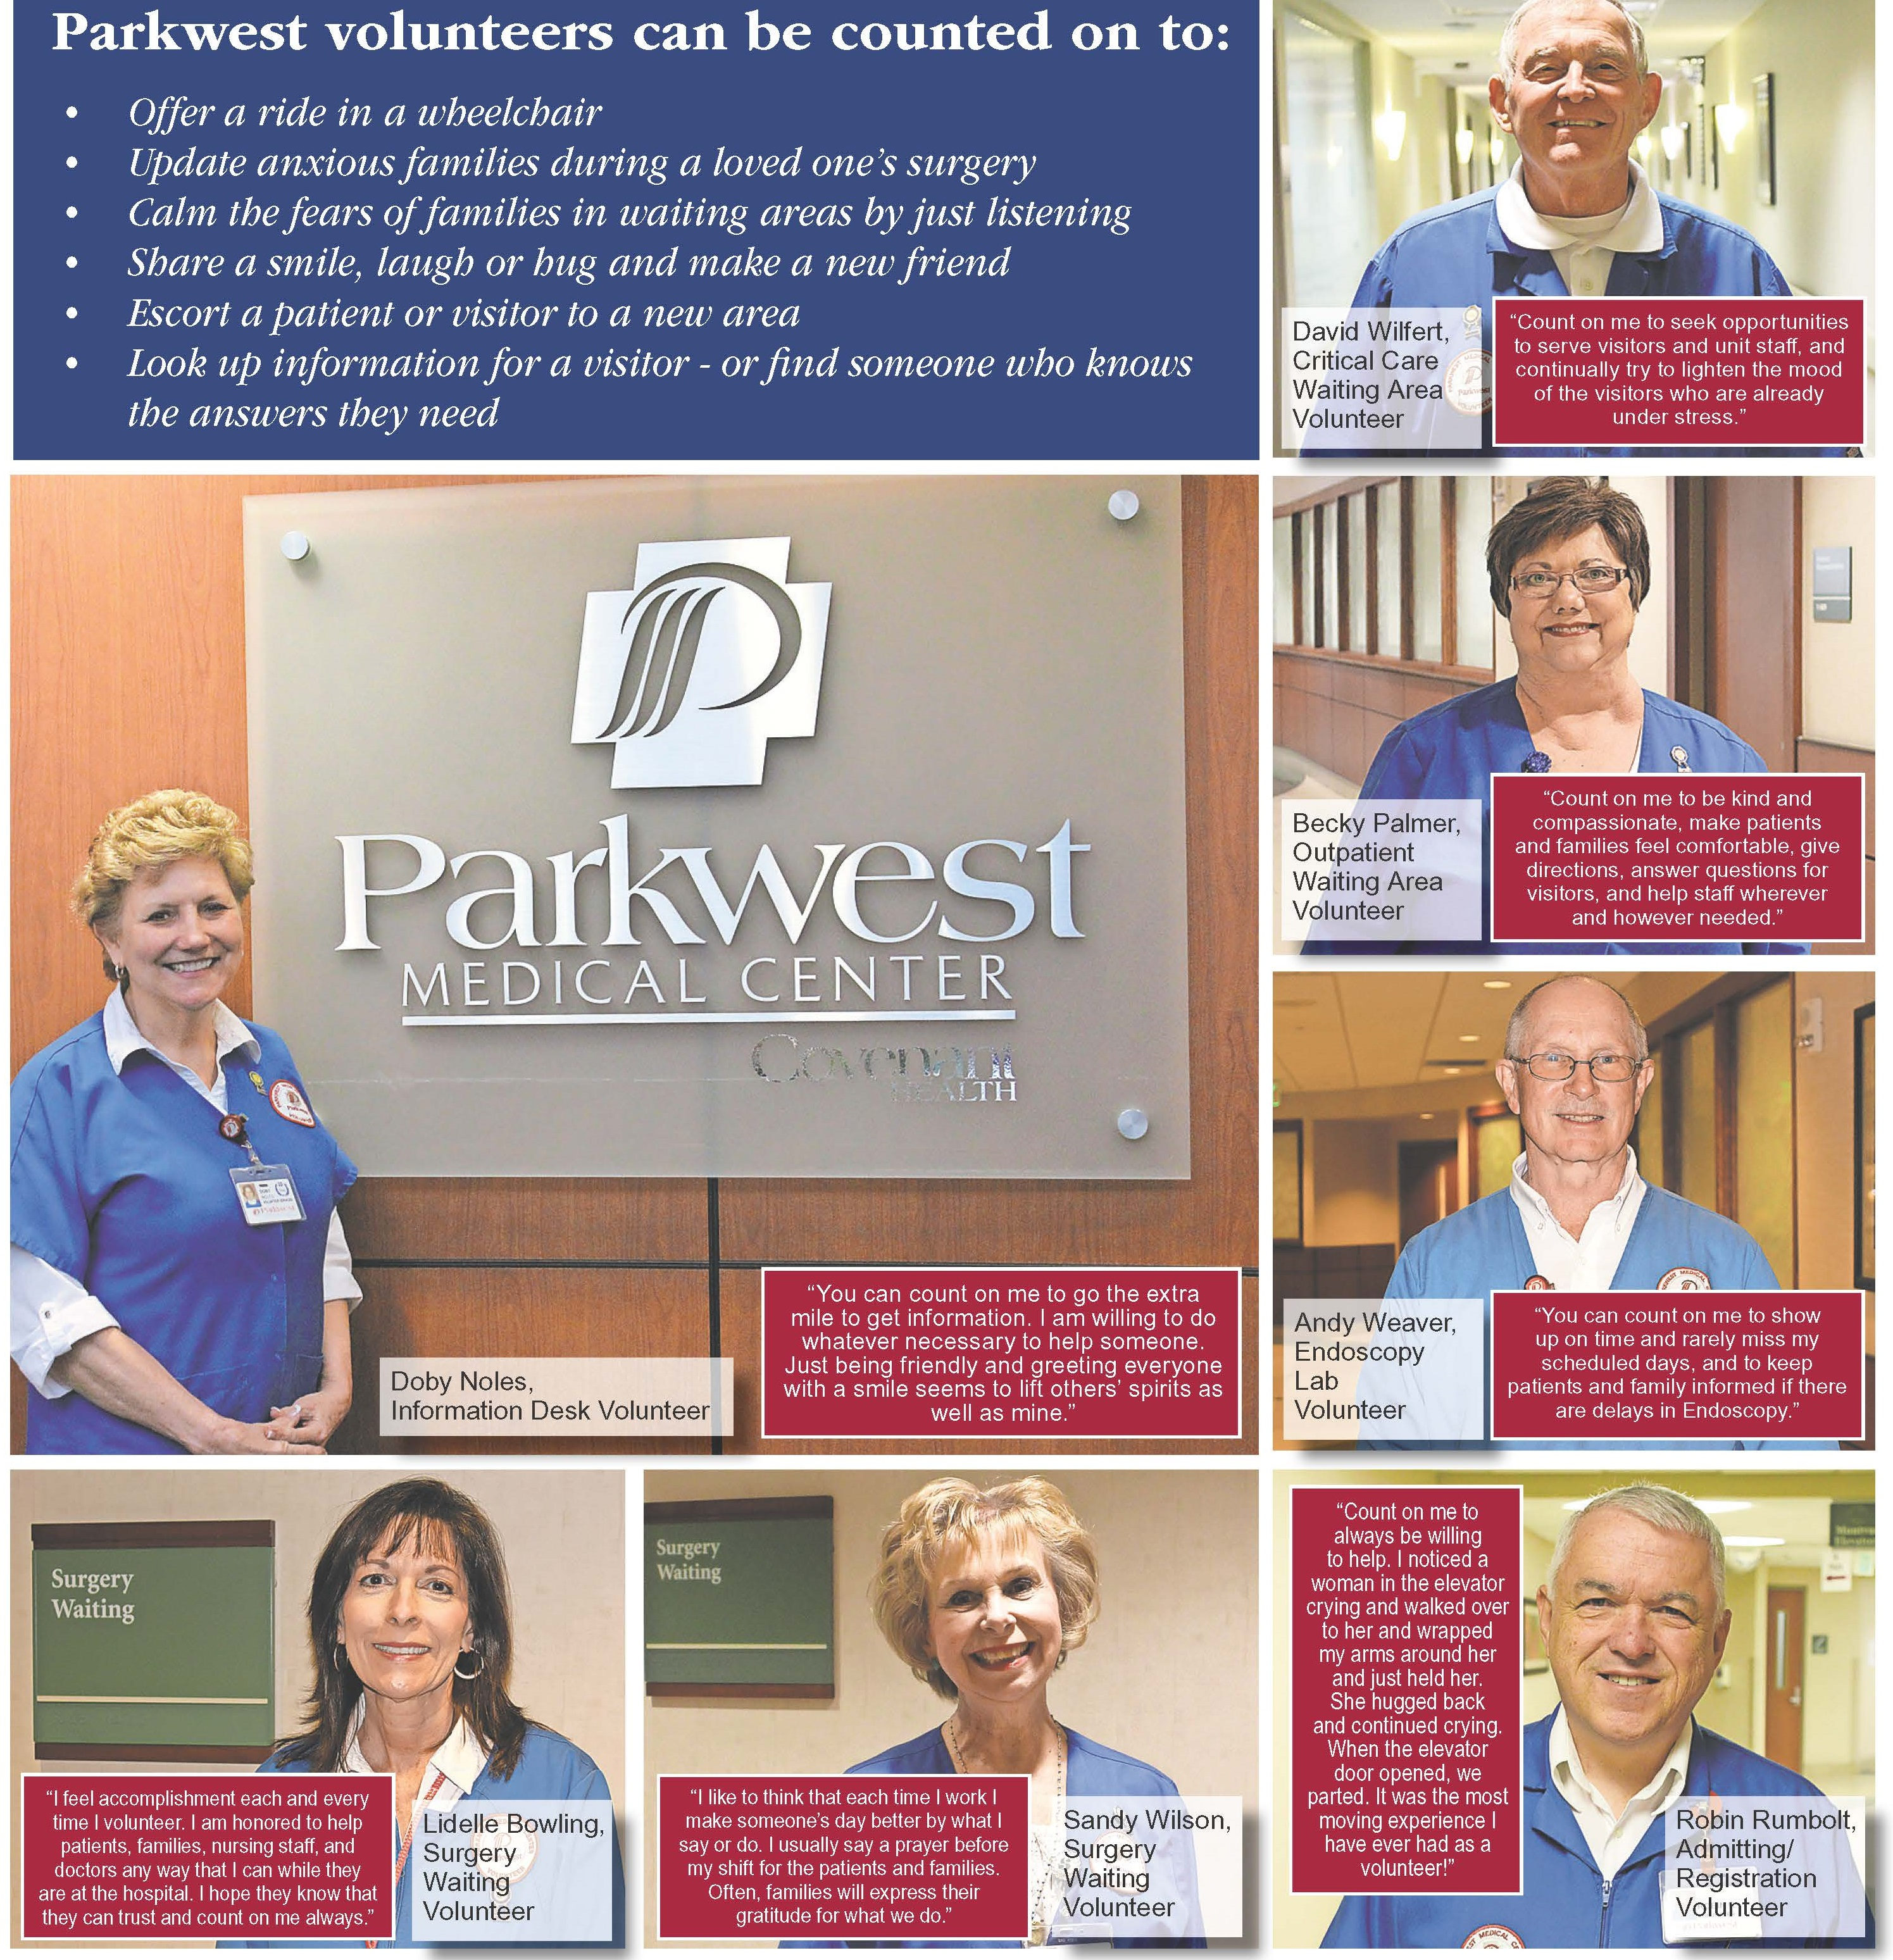 Parkwest Medical Center Counts on Volunteers